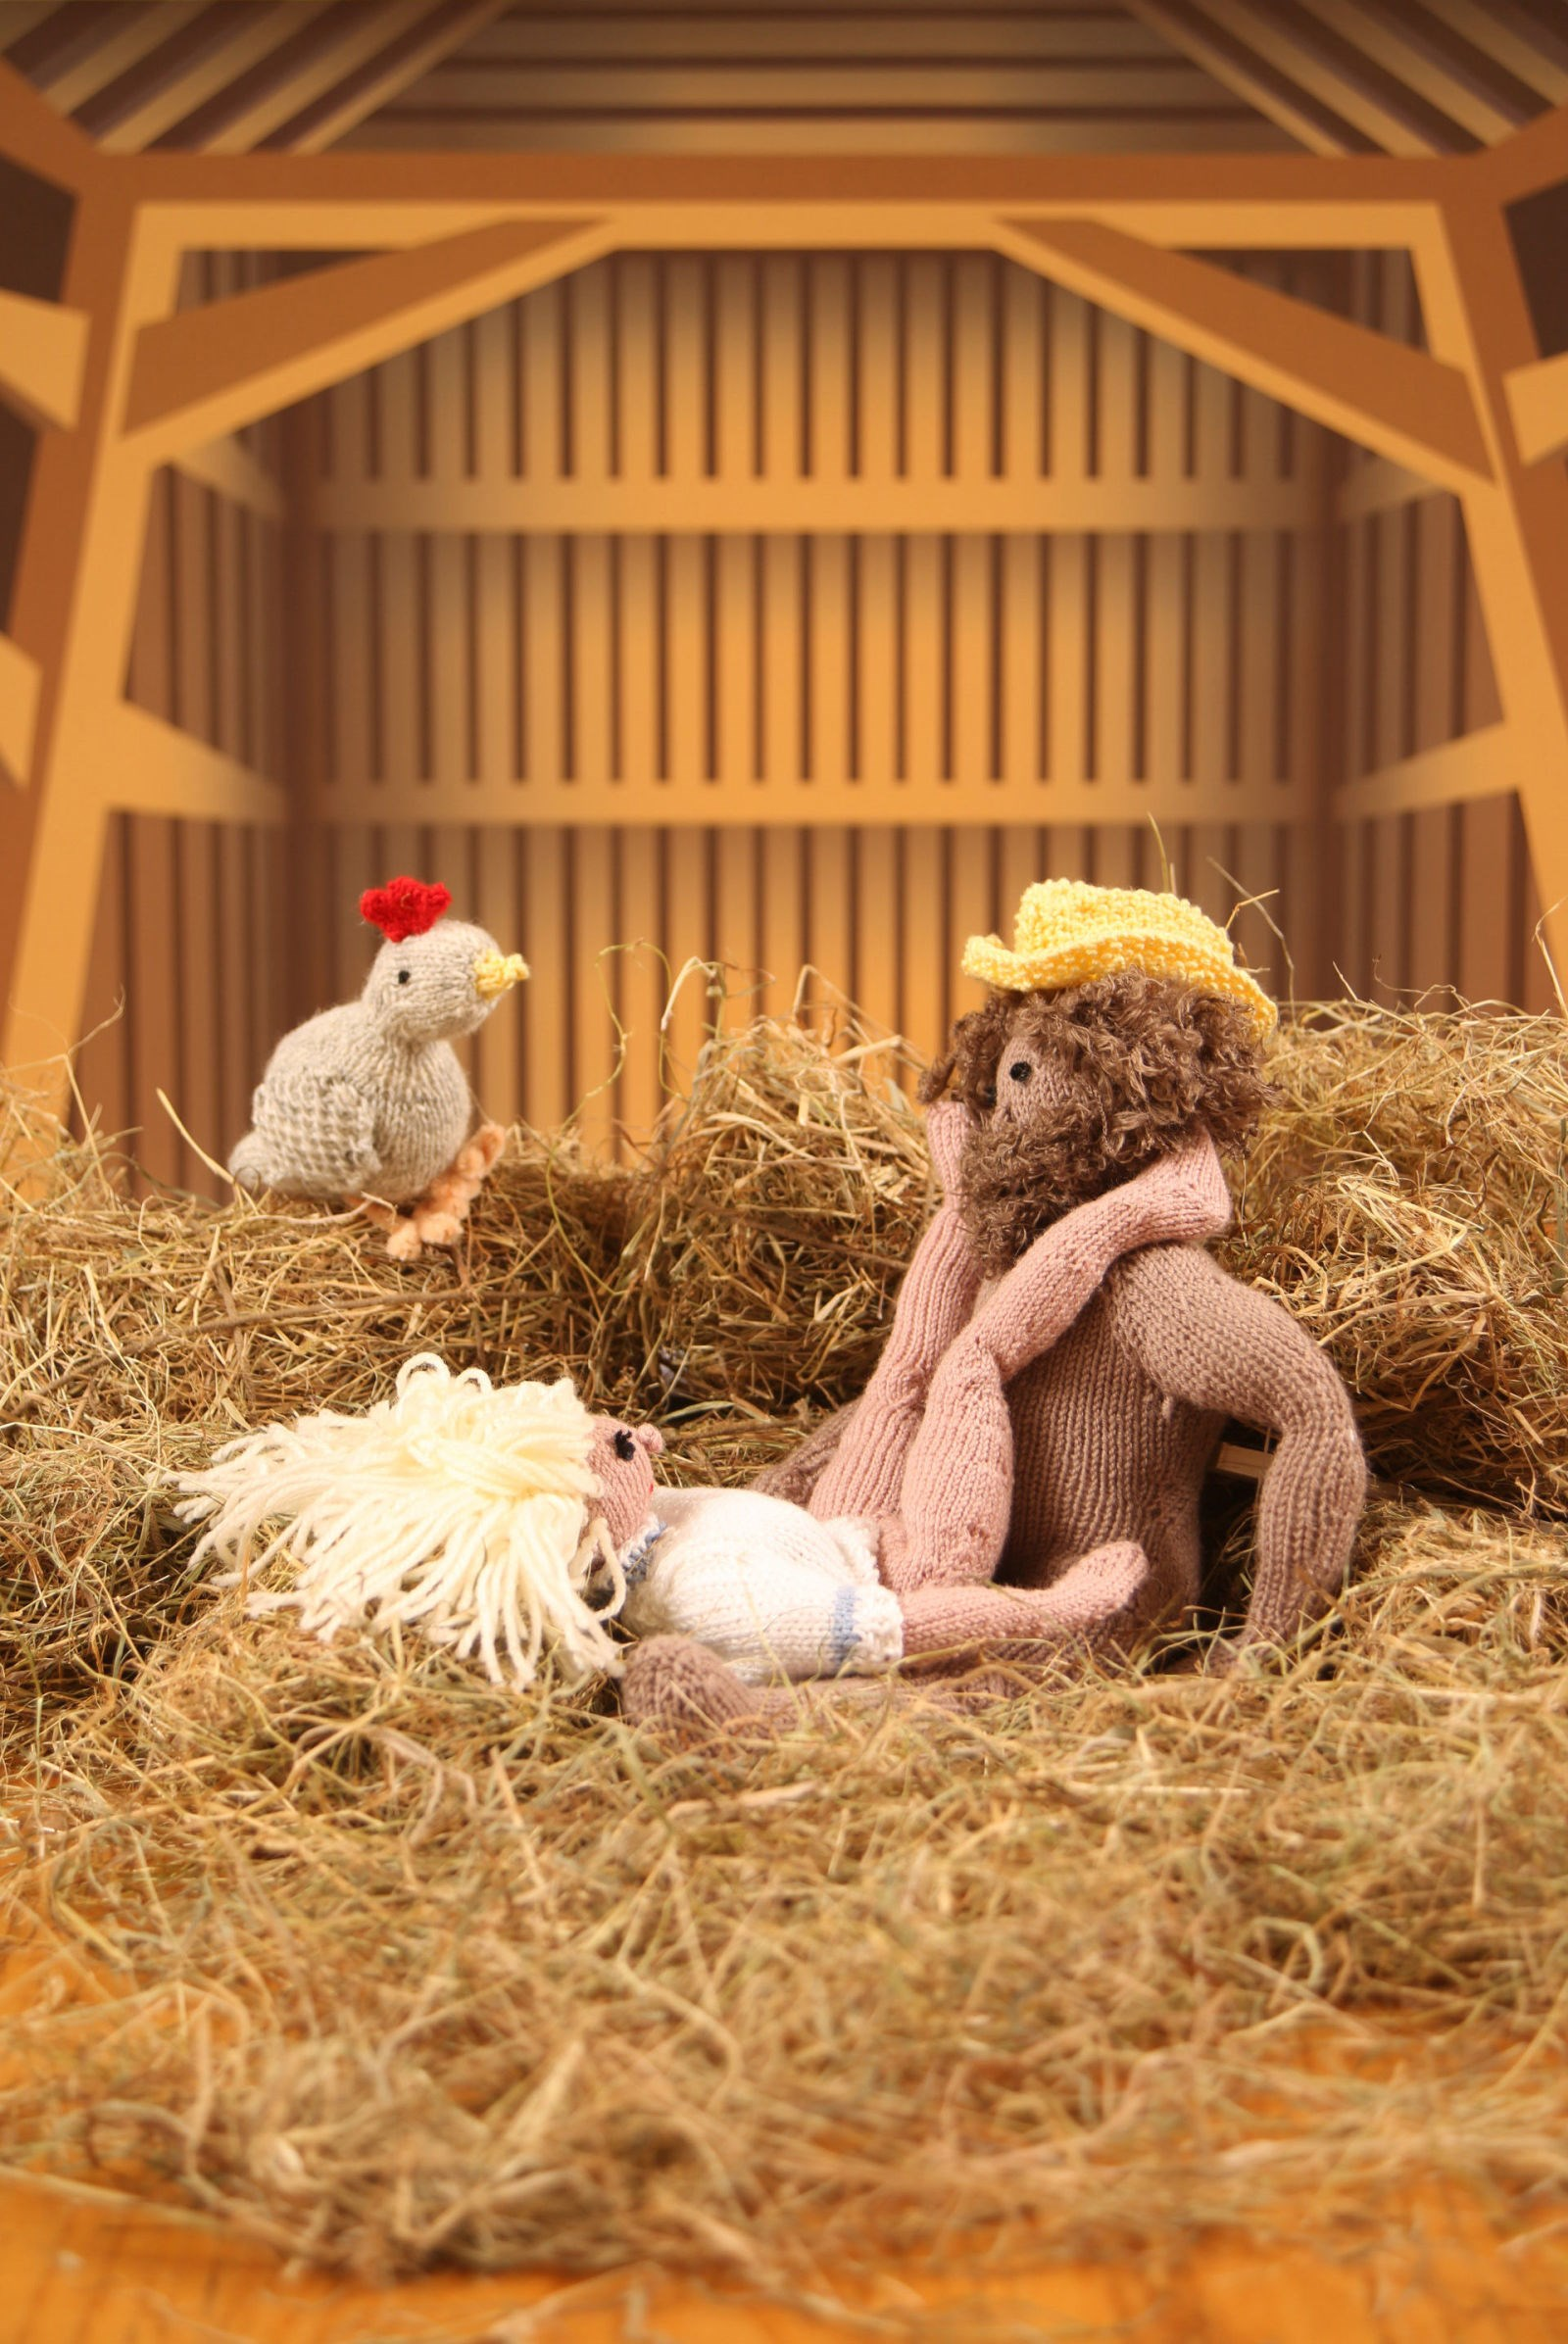 UK knitter Geraldine Warner (pen name Trixie Von Purl) has spent five months of her life creating knitted versions of the Kama Sutra and, as you can see, it's everything we hoped it would be, and then some.